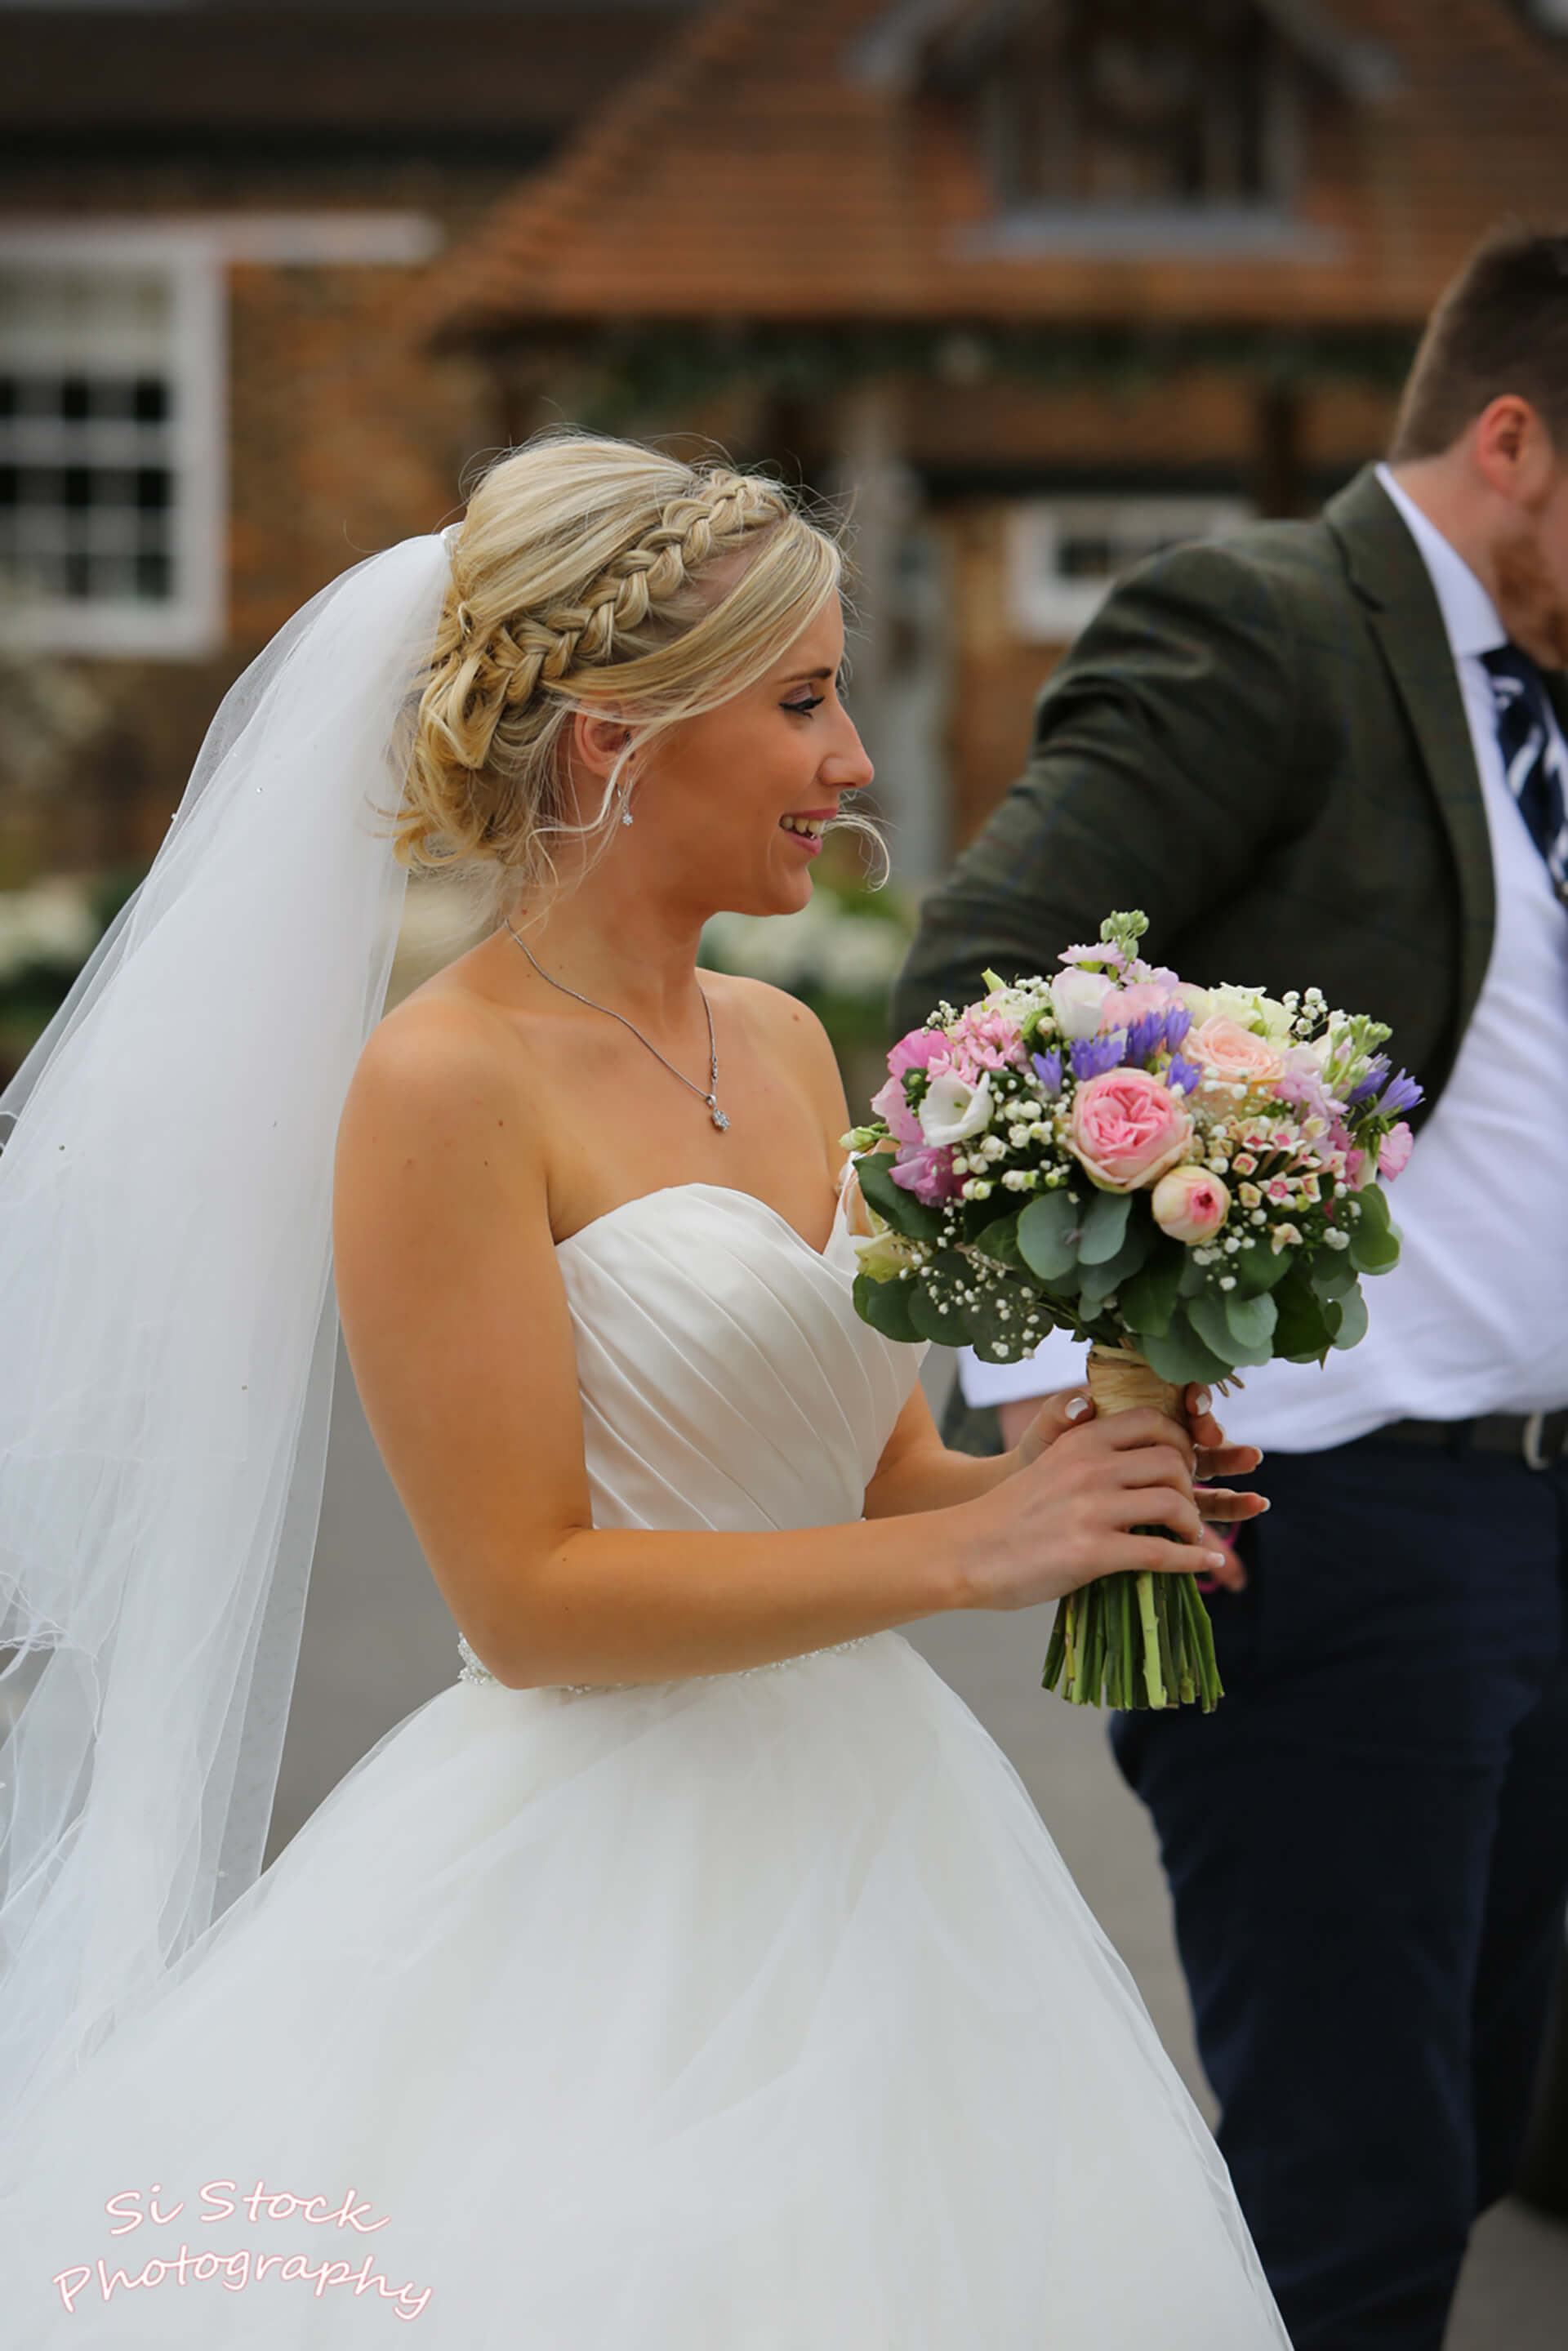 The beautiful Sophie and her gorgeous pink bouquet captured by Simon Stock.